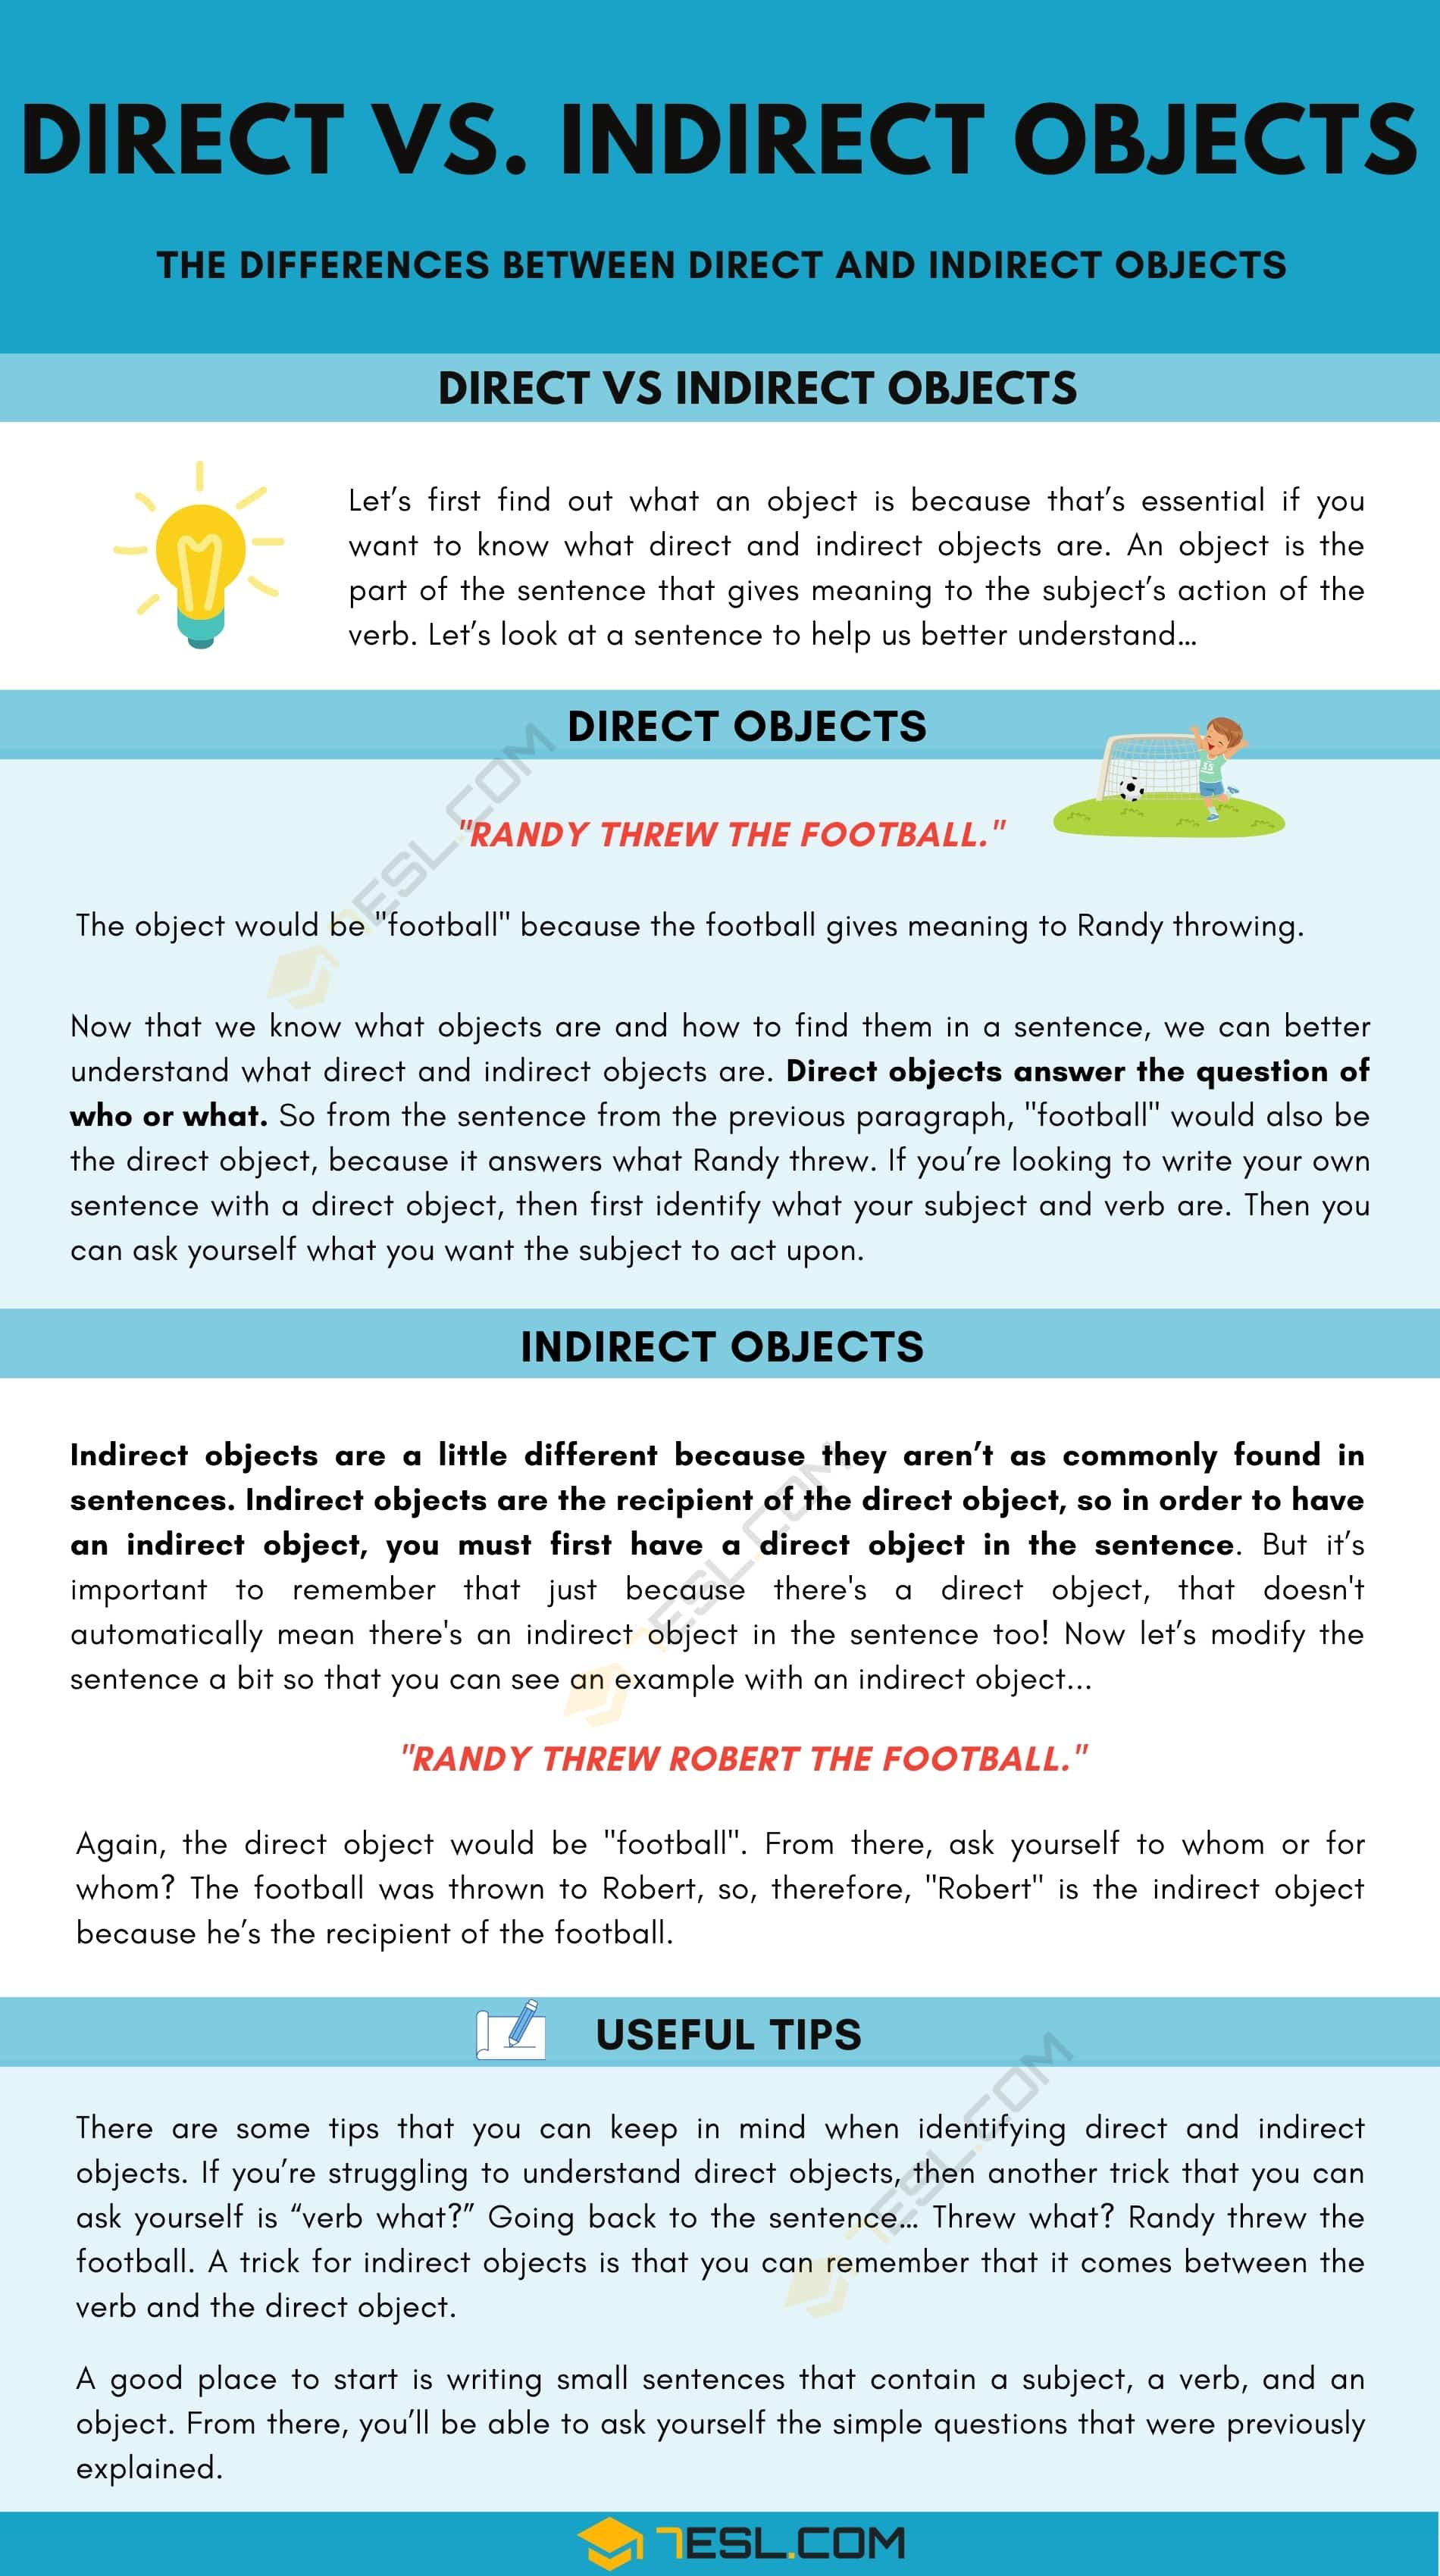 The Differences Between Direct and Indirect Objects in English Grammar